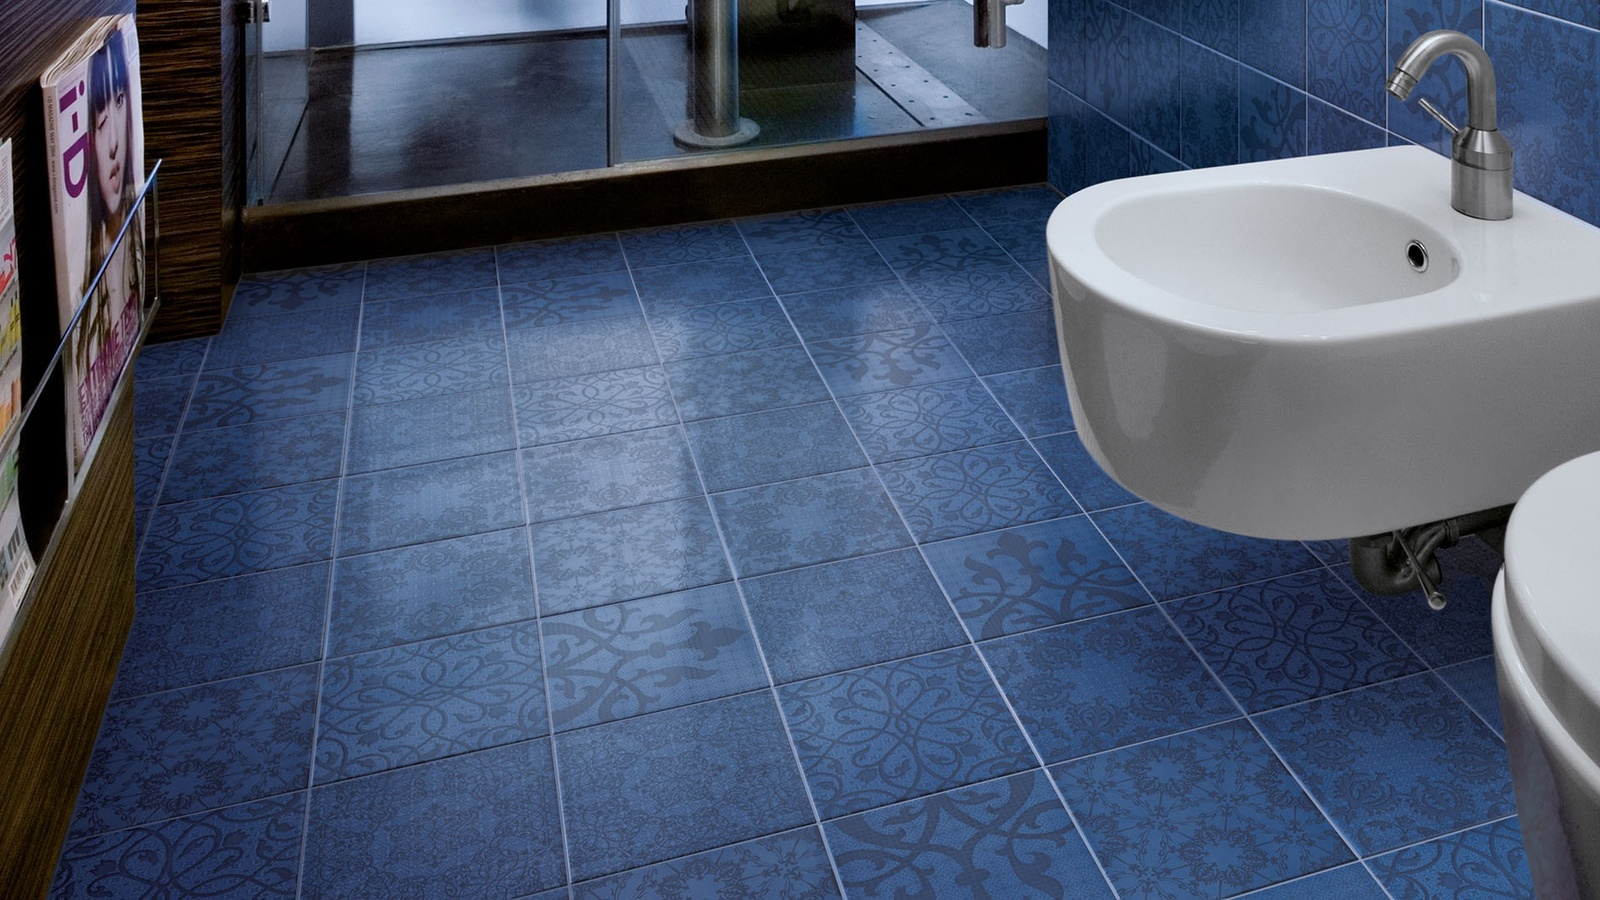 Tile a bathroom floor - View In Gallery Hand Painted Ceramic Floor Tiles Minoo Marcel Wanders